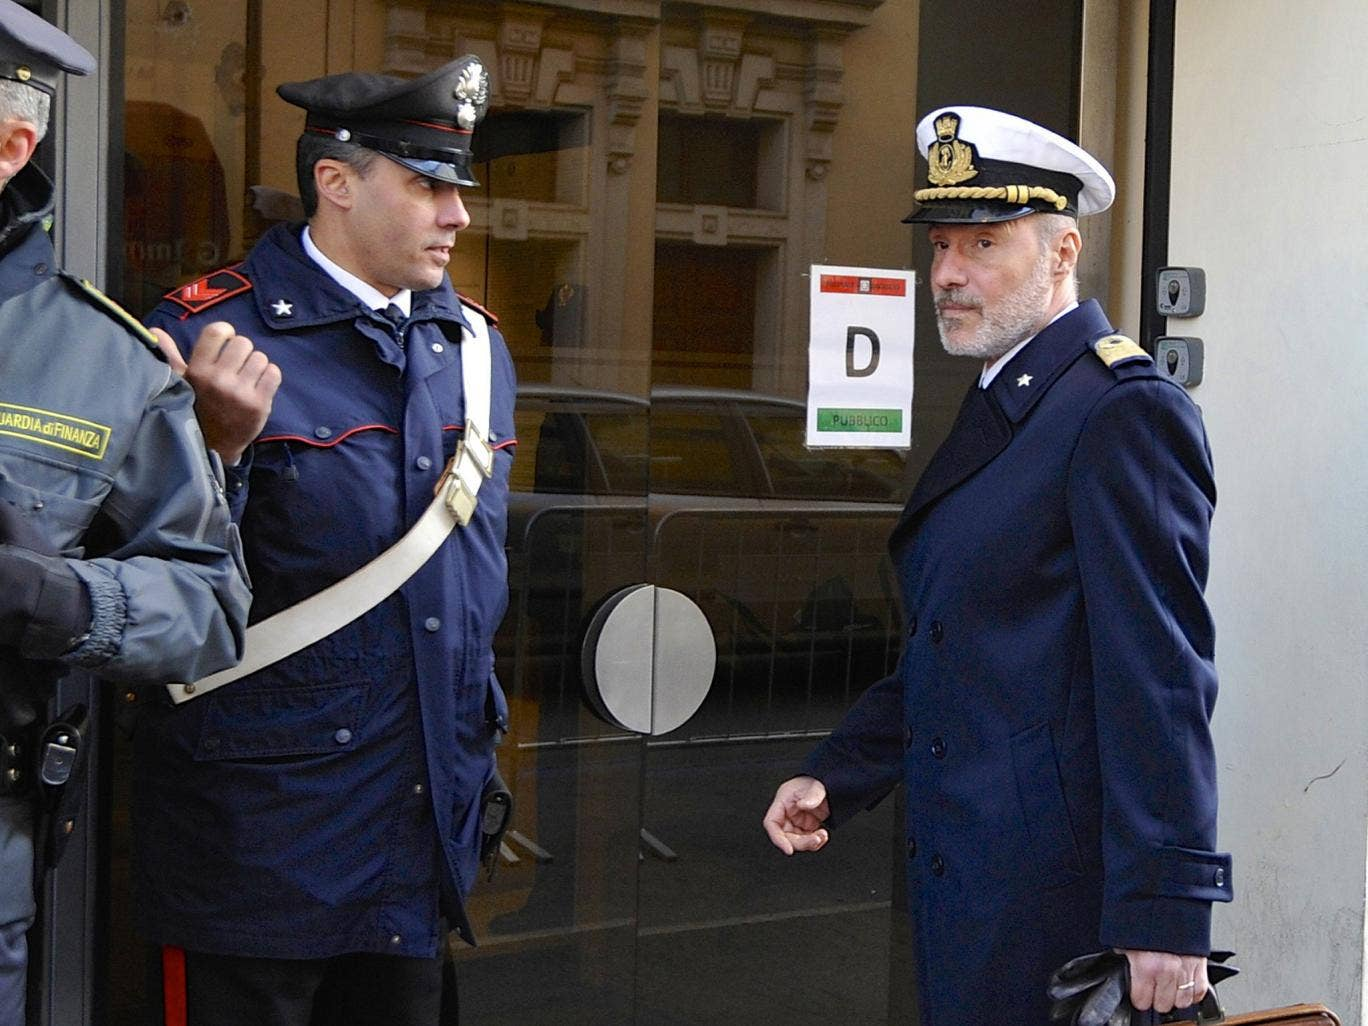 Coast Guard Captain Gregorio De Falco, right, arrives at the Grosseto court - the court was told hundreds of people were still aboard the shipwrecked Costa Concordia when the commander abandoned the cruise liner in a lifeboat